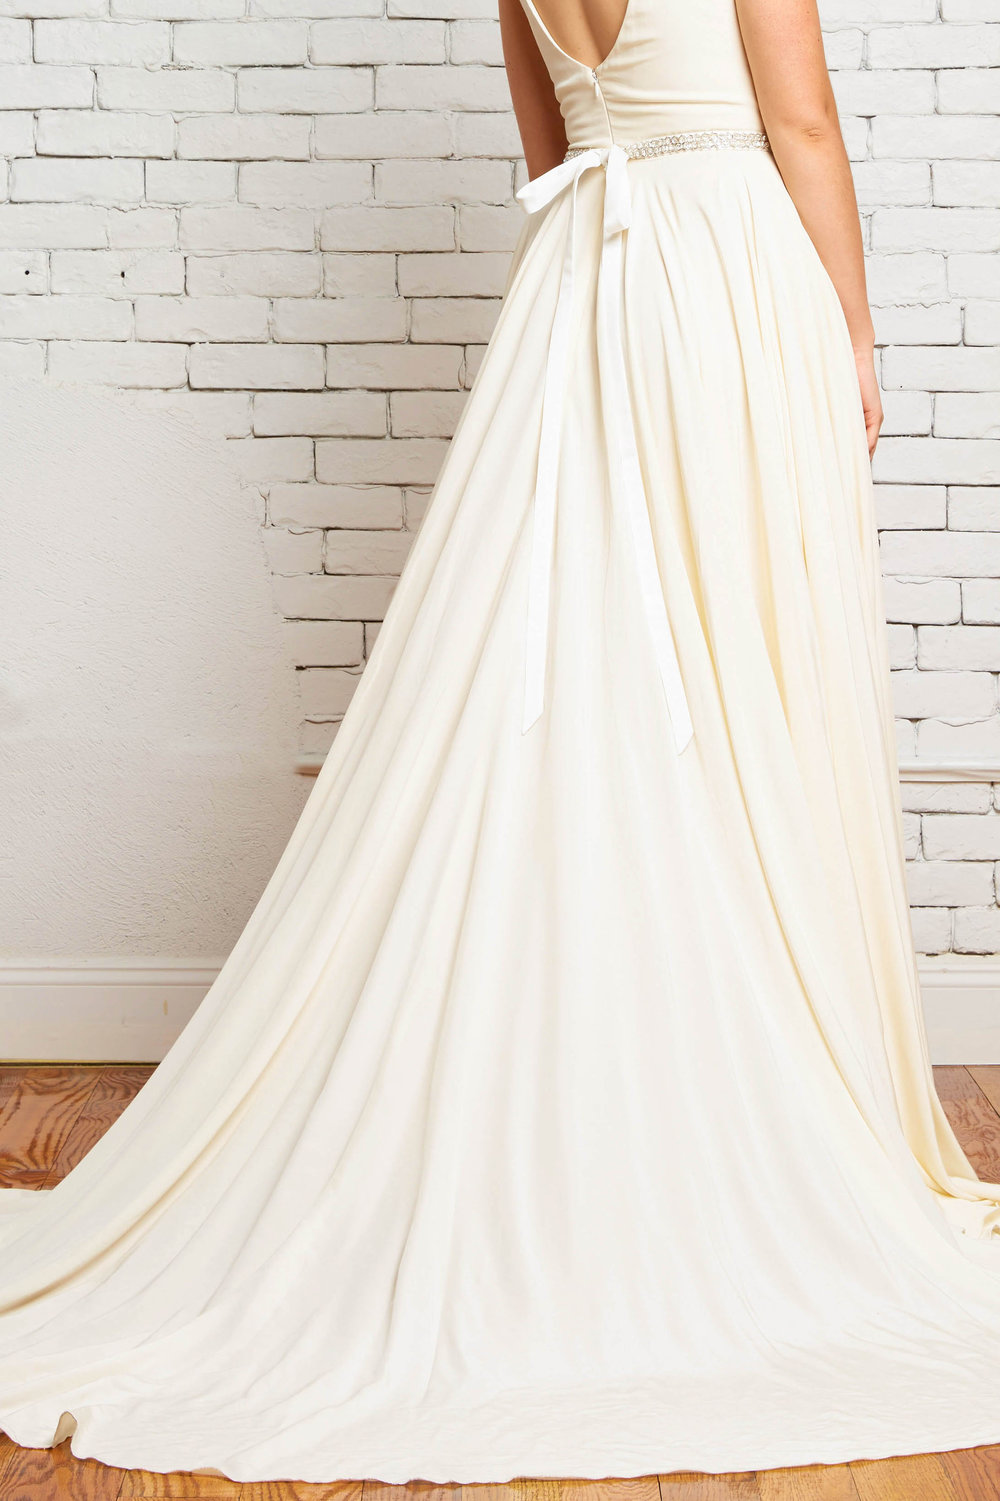 11D Hudson Back-Rebecca Schoneveld-Circle_Skirt_Dramatic_Boho_Bride_Wedding_Style.jpg